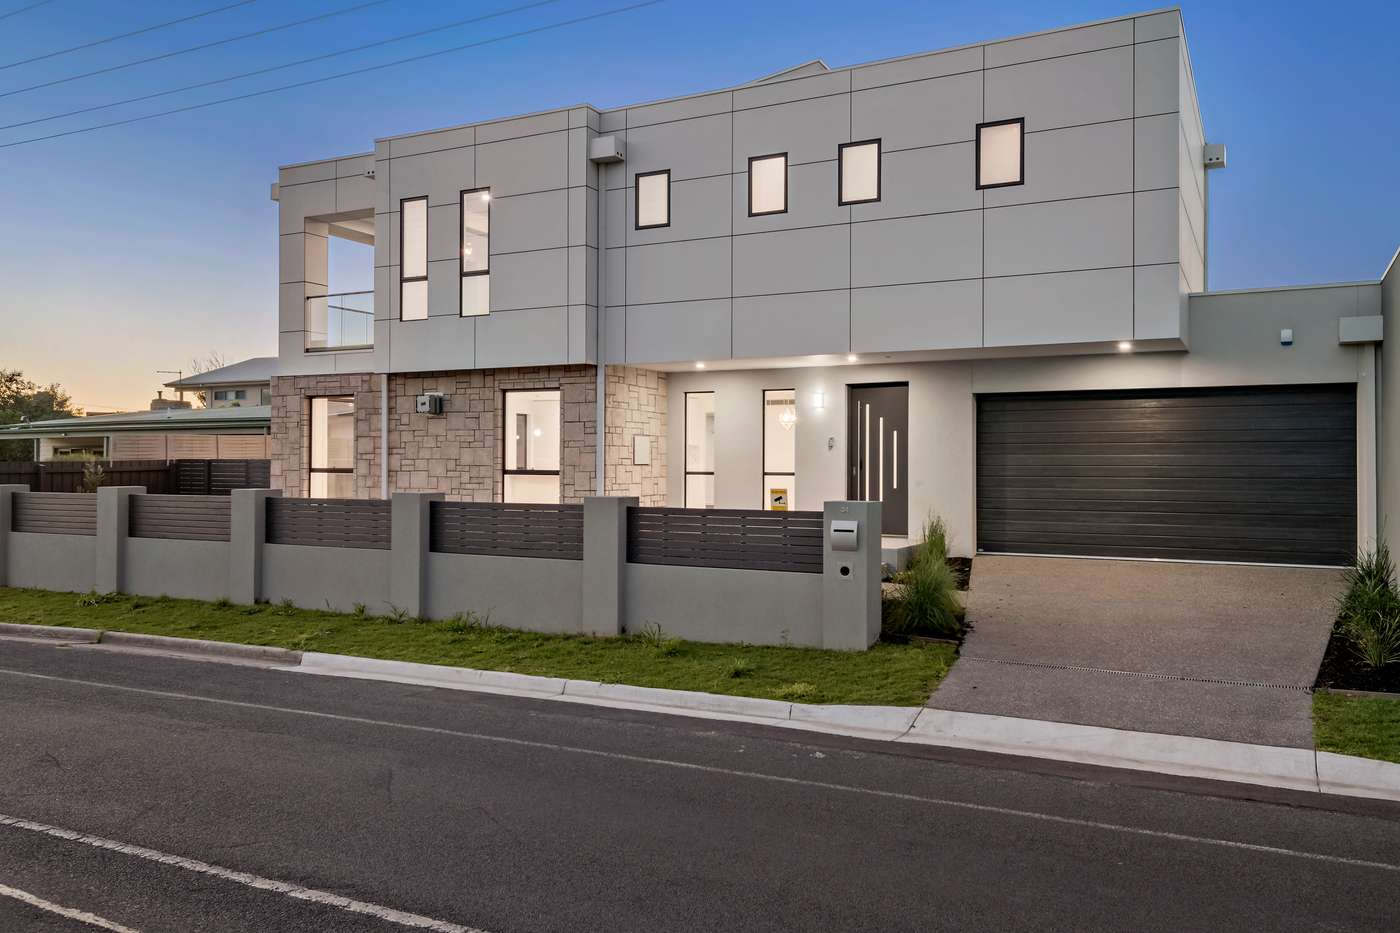 Main view of Homely house listing, 34 Charles Street, Dromana, VIC 3936